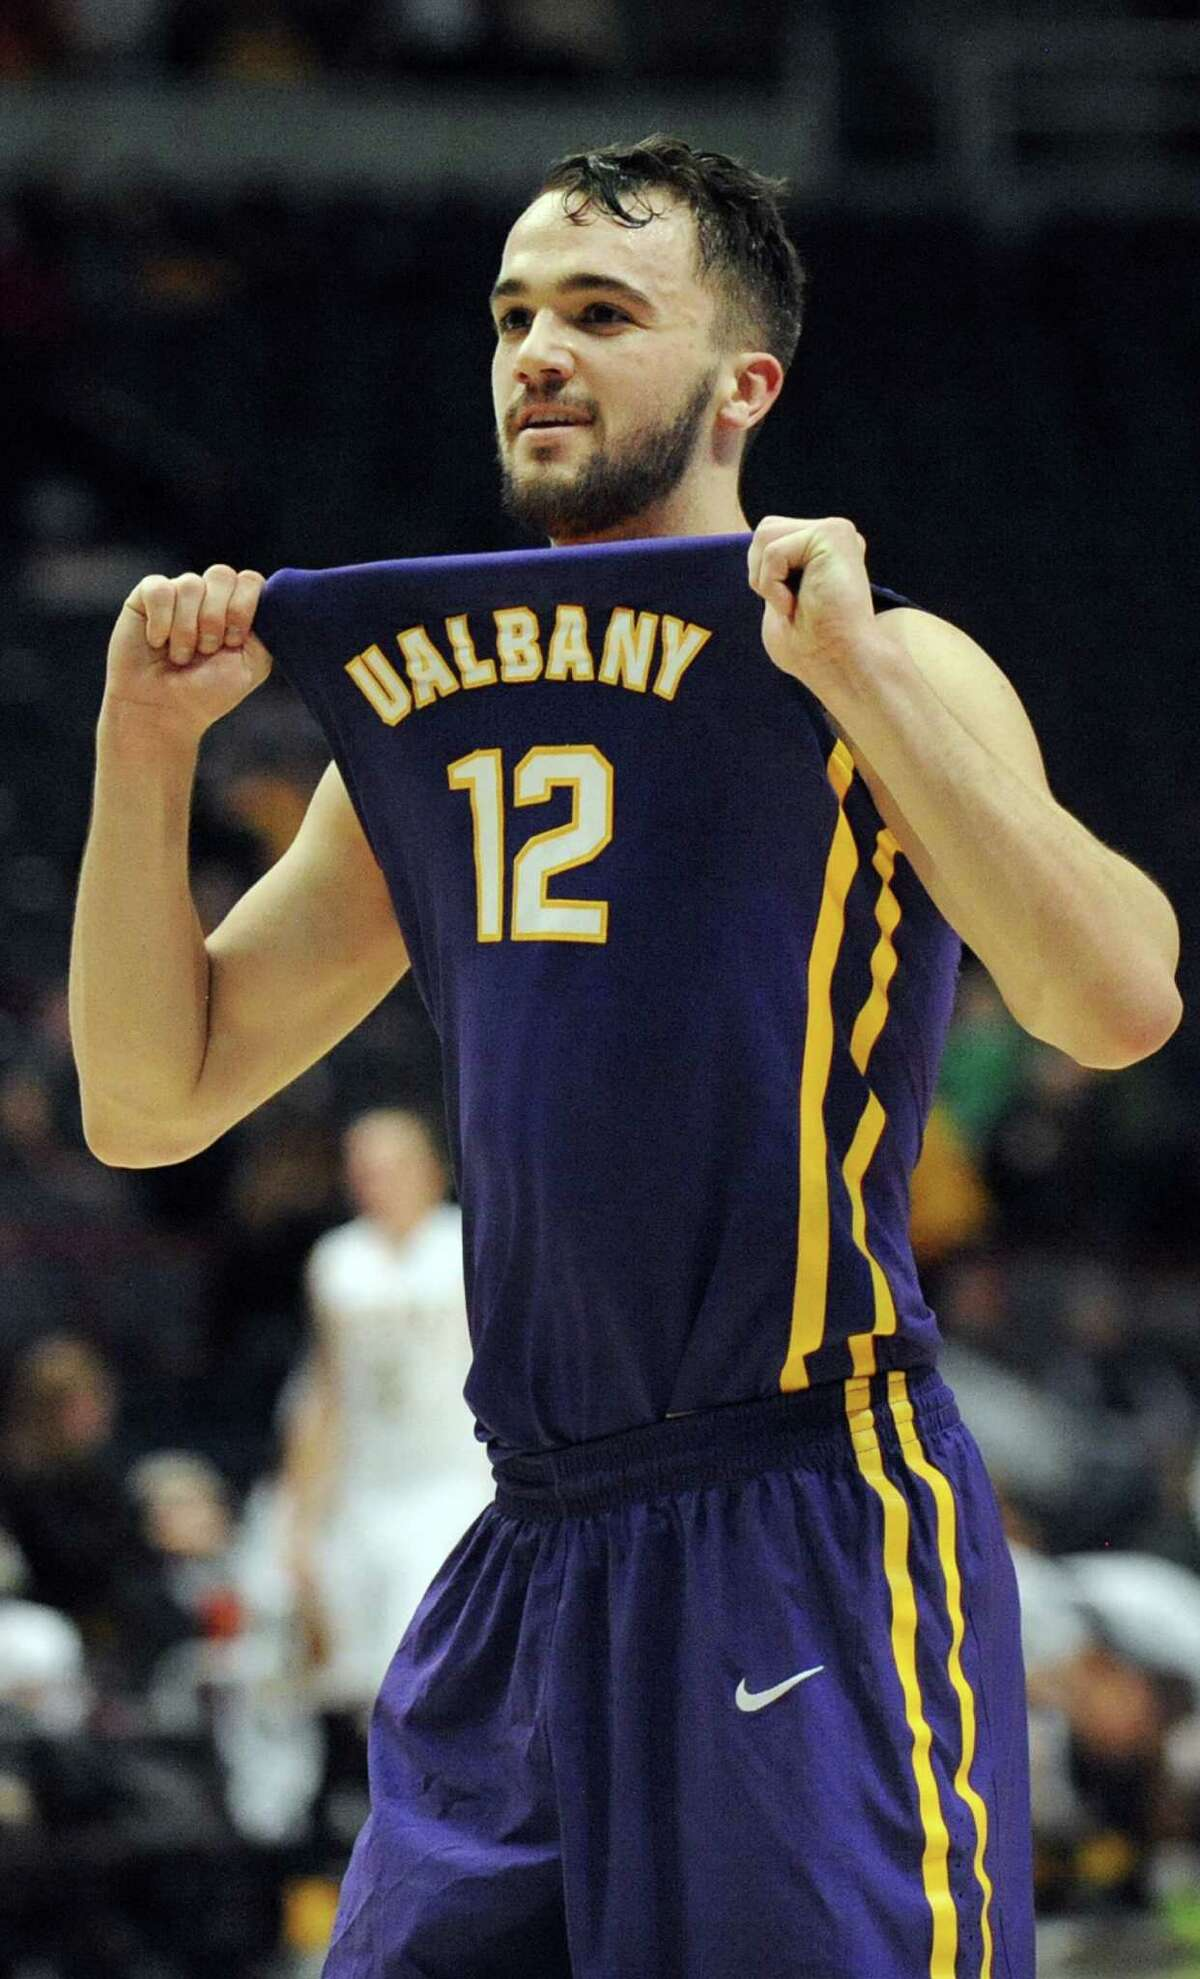 UAlbany's Peter Hooley shows his jersey to his fans when they win 77-68 over Siena during their basketball game on Saturday Dec. 13, 2014, at Times Union Center in Albany, N.Y. (Cindy Schultz / Times Union)